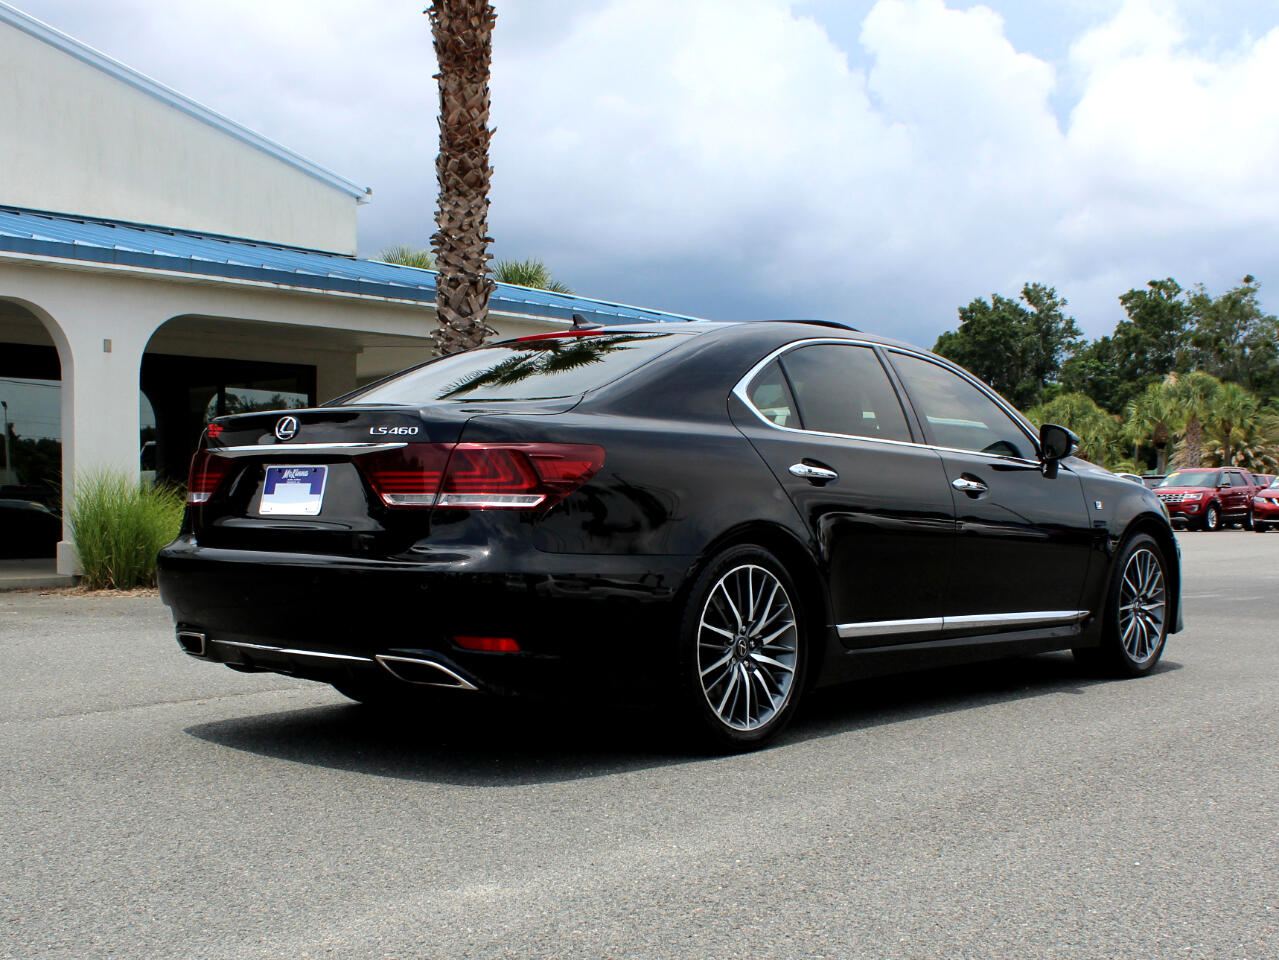 2013 Lexus LS 460 Luxury Sedan